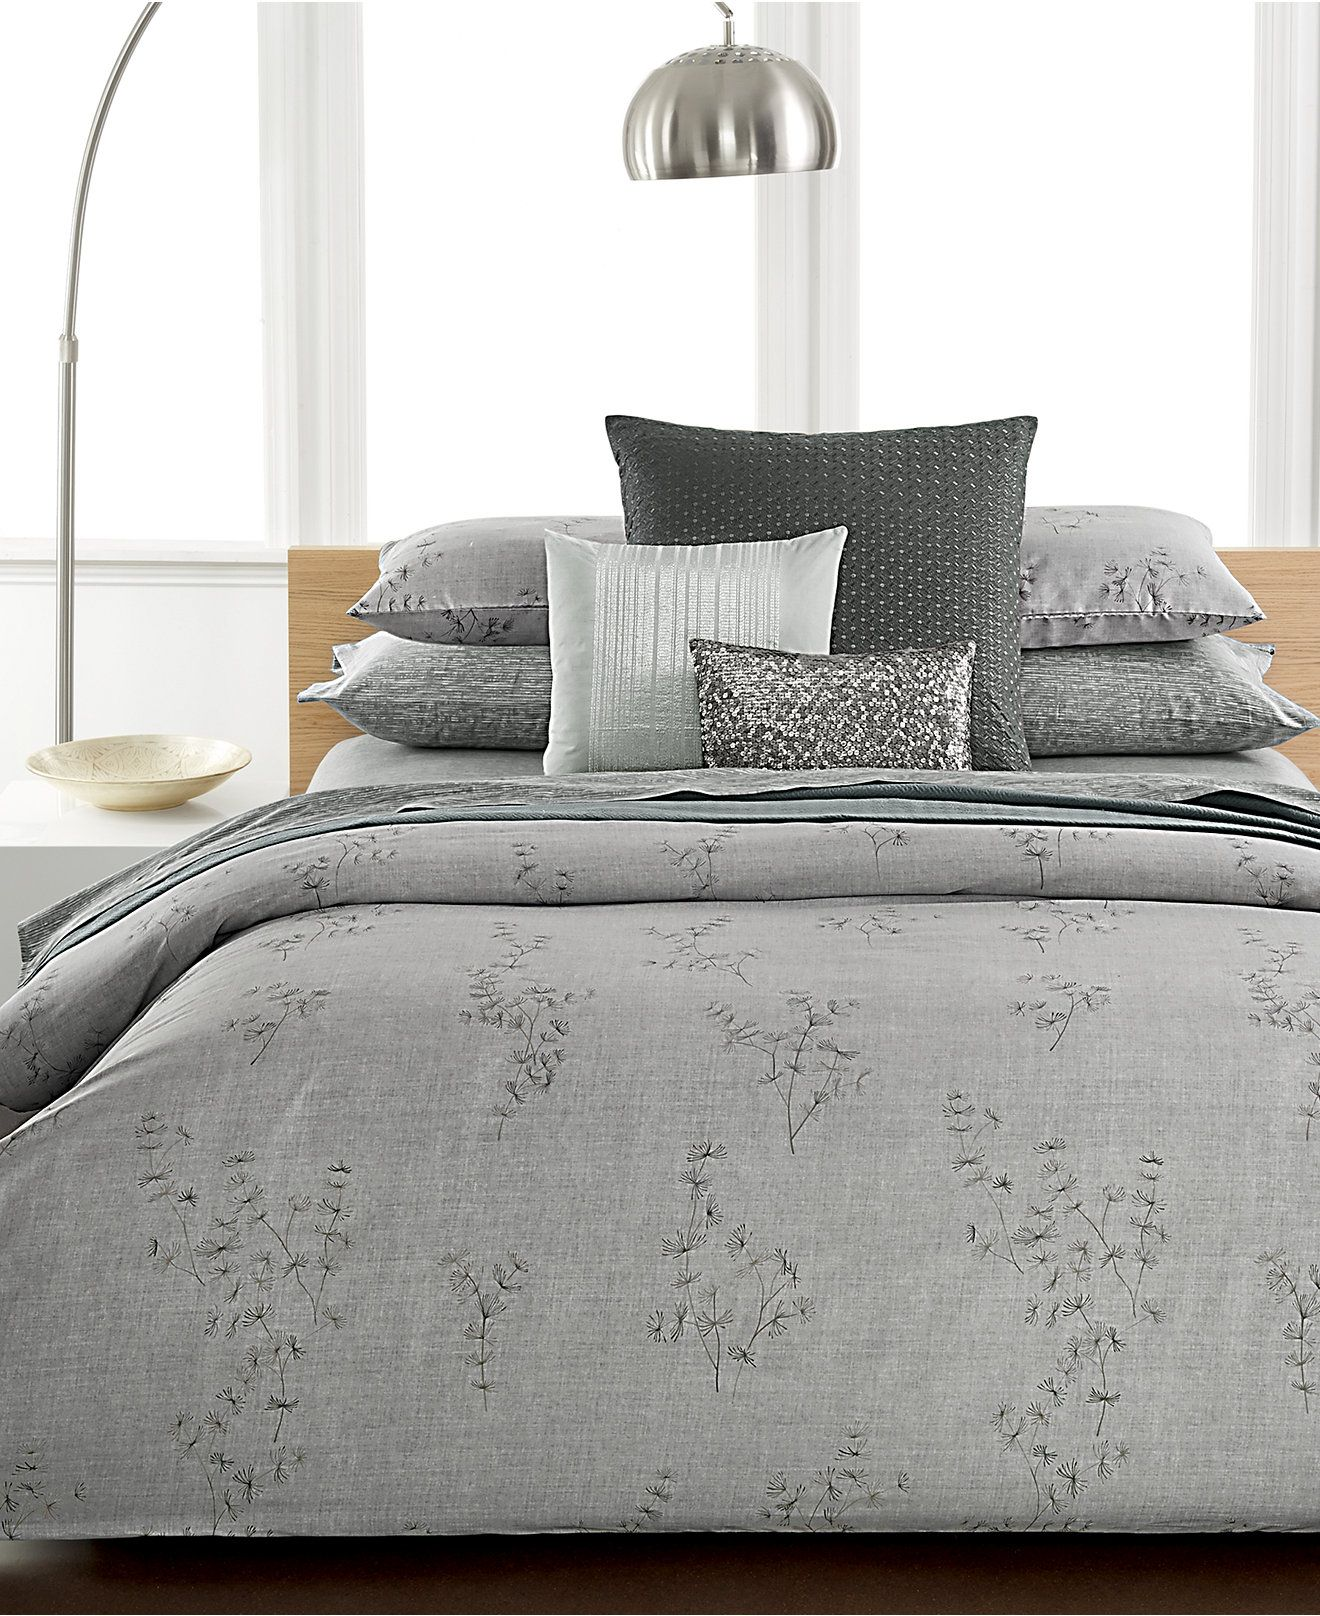 Calvin Klein Acacia Bedding Collection Bedding Collections Bed Bath Macy S Bed King Fitted Sheet Coverlet Bedding